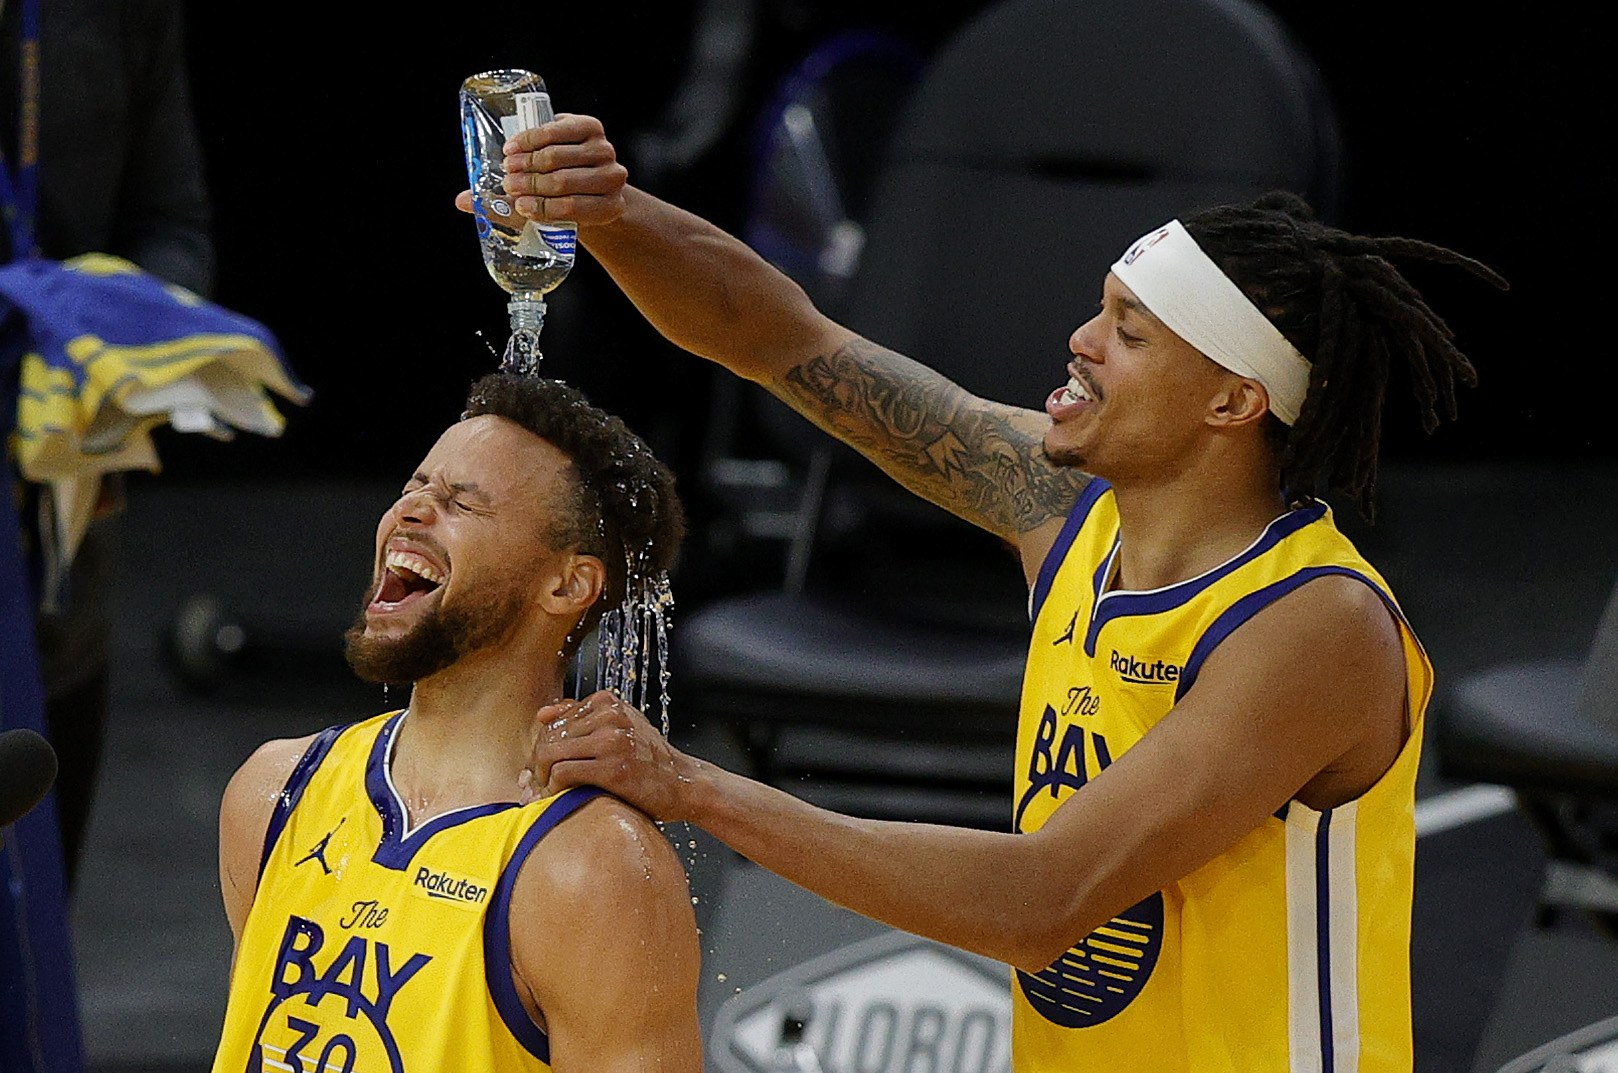 Steph Curry Responds To Haters By Dropping 62 Points On The Trail Blazers